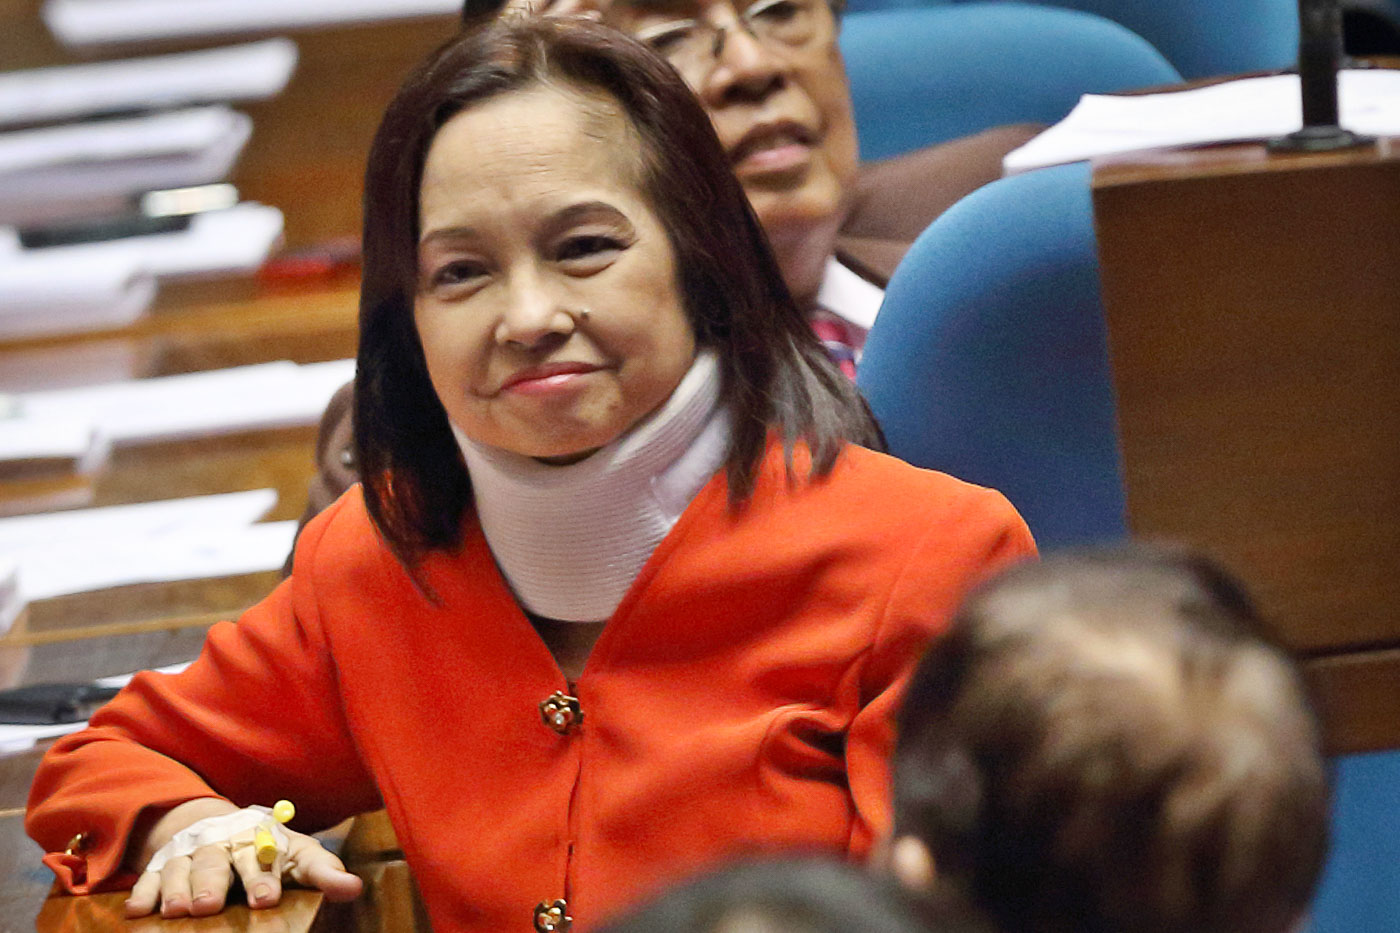 gloria macapagal arroyo administration The arroyo administration (2001-present) gloria macapagal-arroyo is sworn in as president at the 2001 edsa revolution on april 25, 2001, two weeks before the mid-term senatorial elections, the sandiganbayan—the philippine anti-graft court—issued an arrest warrant for estrada.